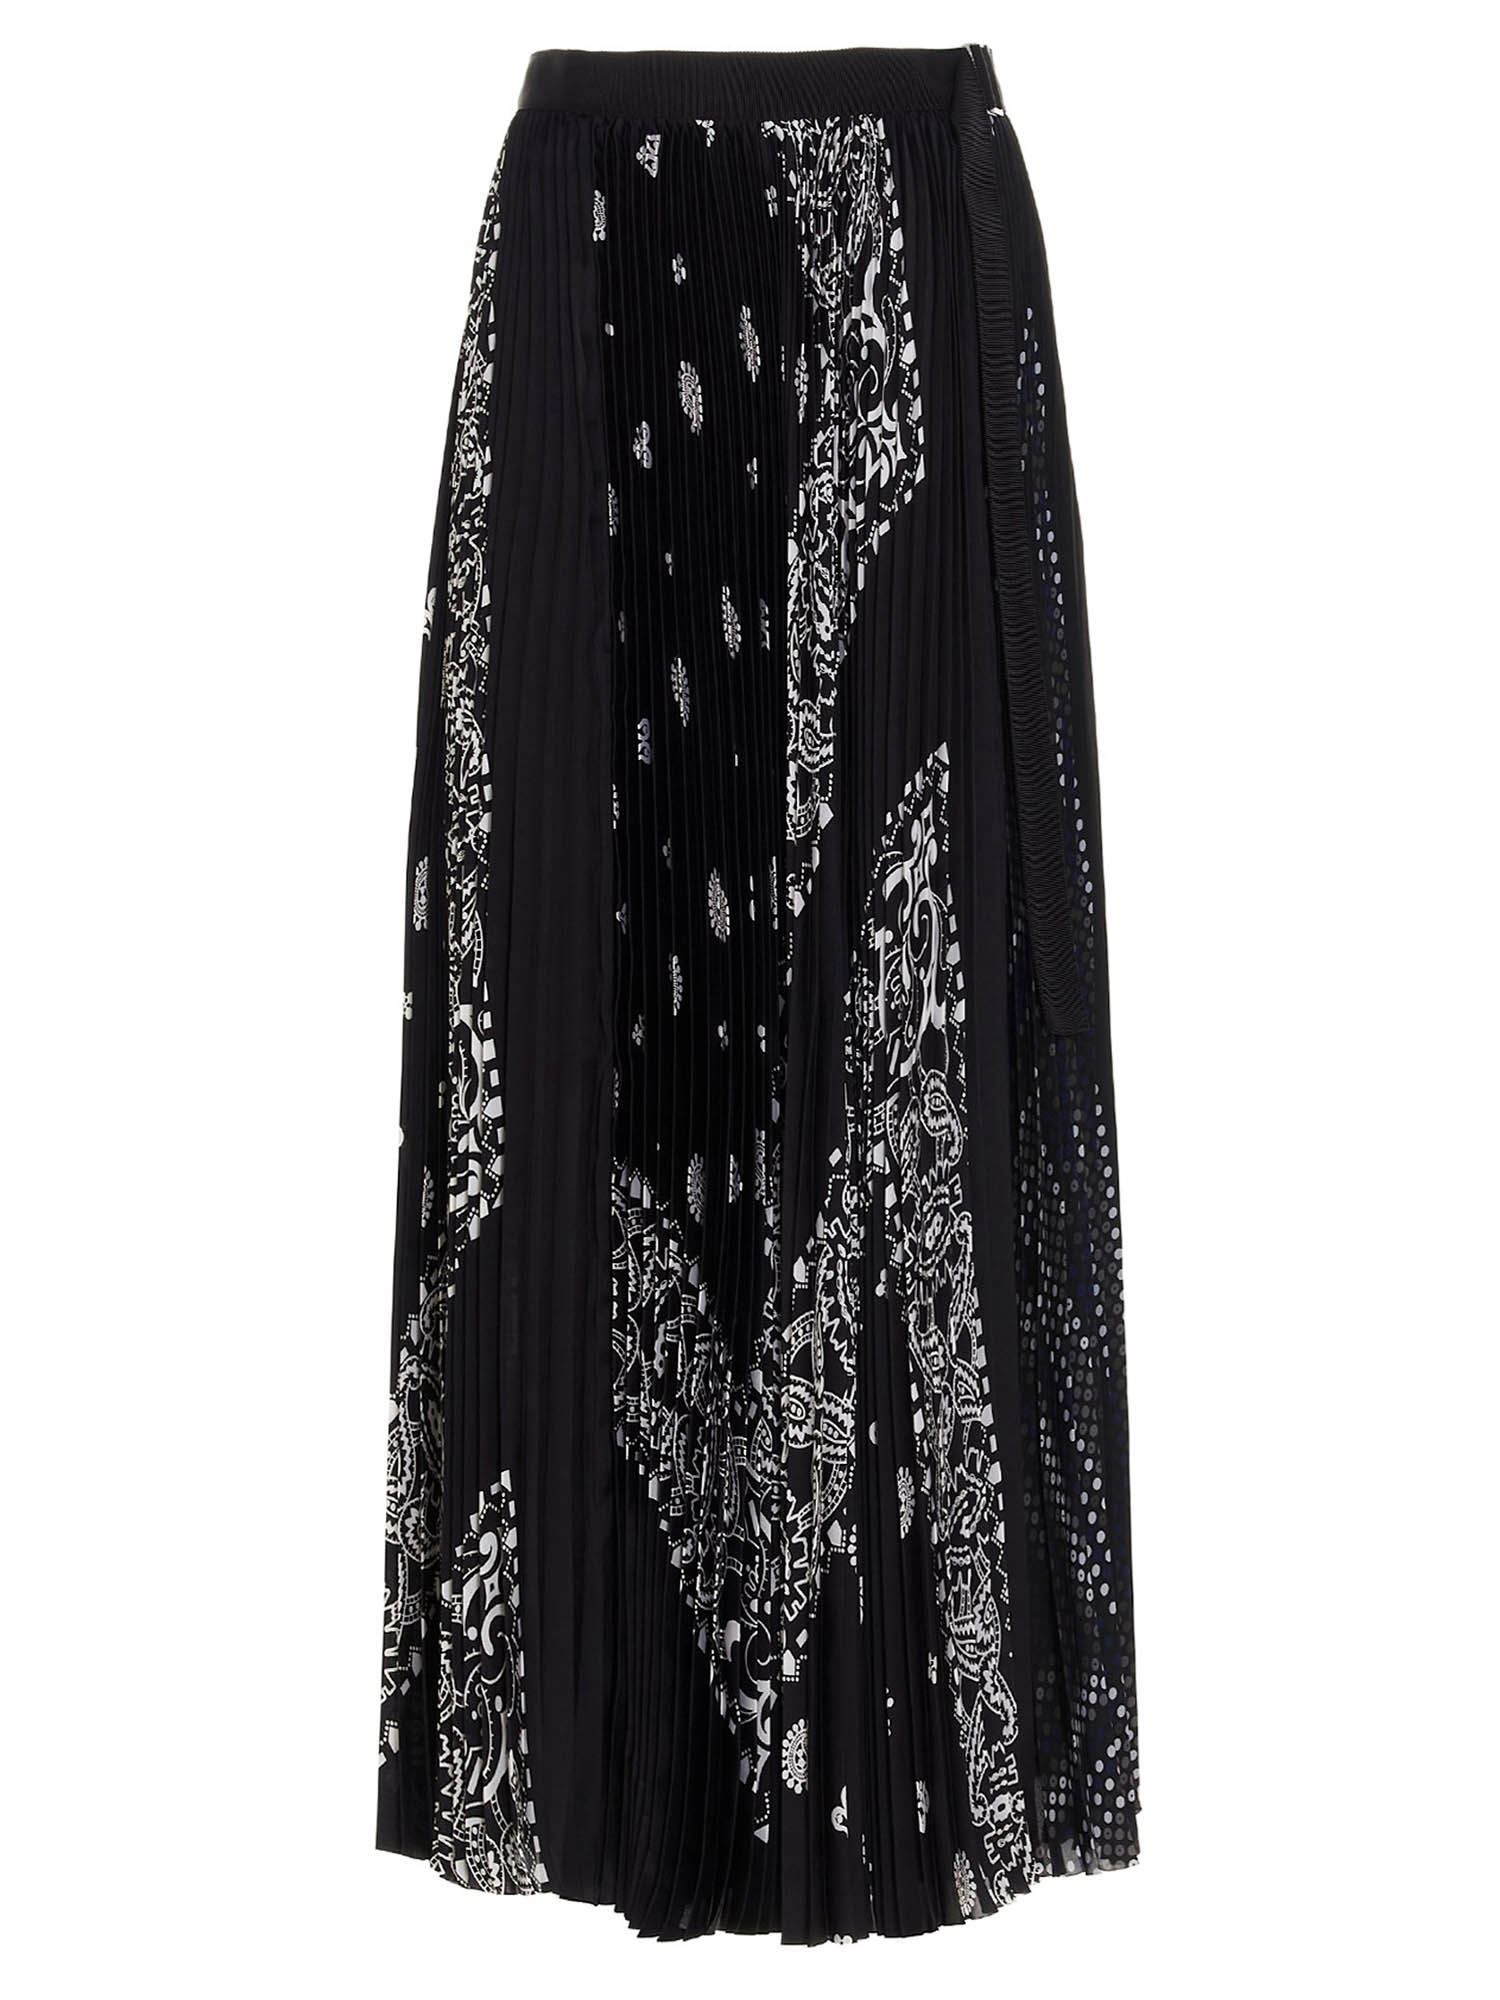 Sacai BANDANA PRINTED SKIRT IN BLACK